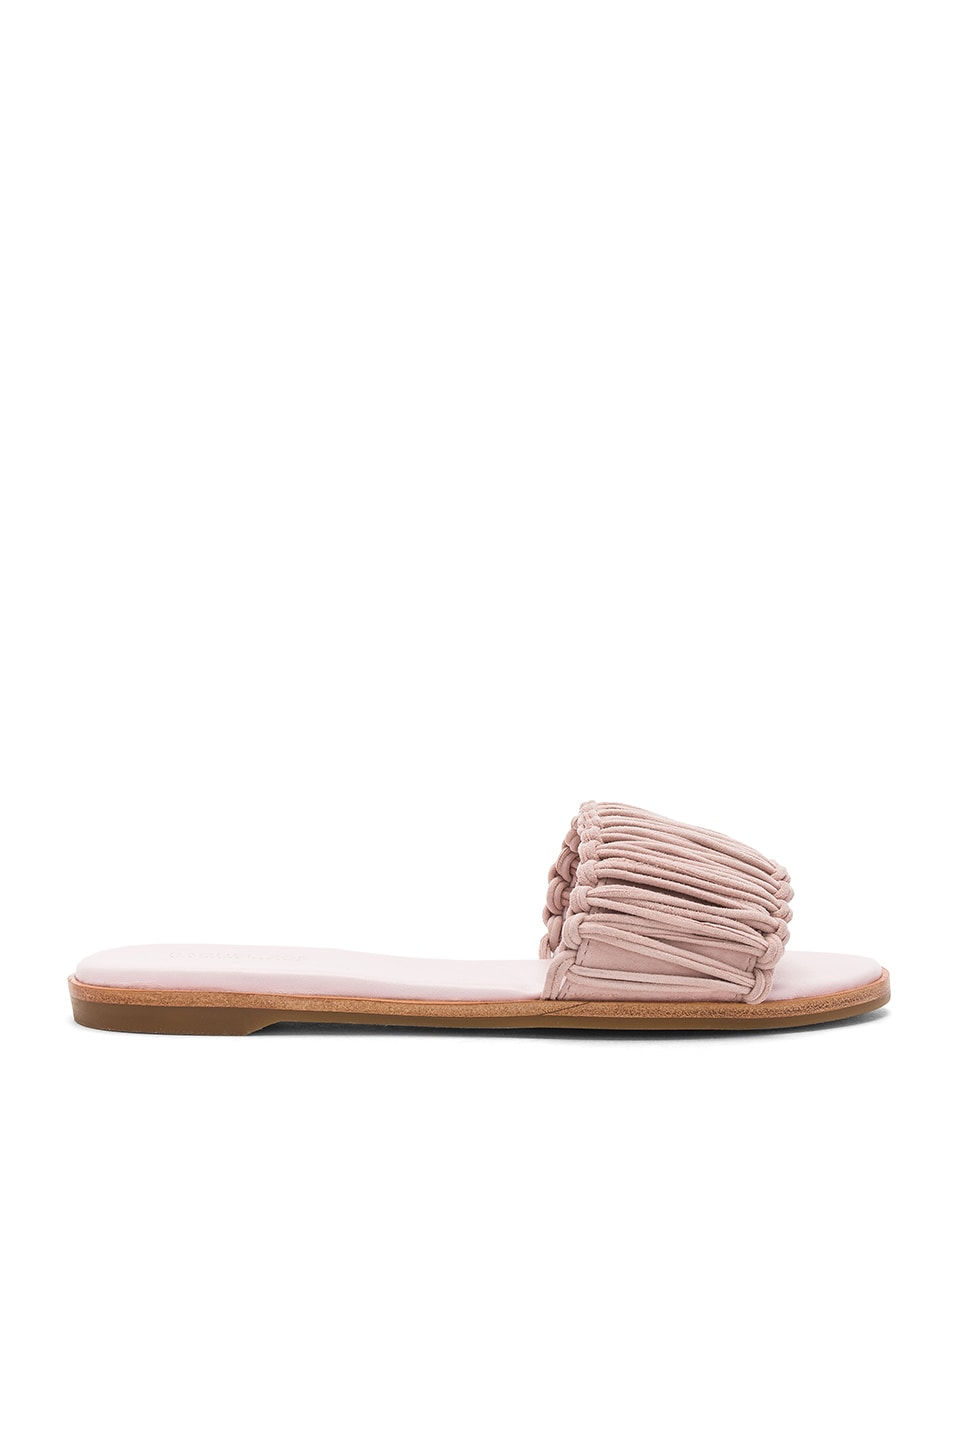 Raina Sandal by Rachel Zoe